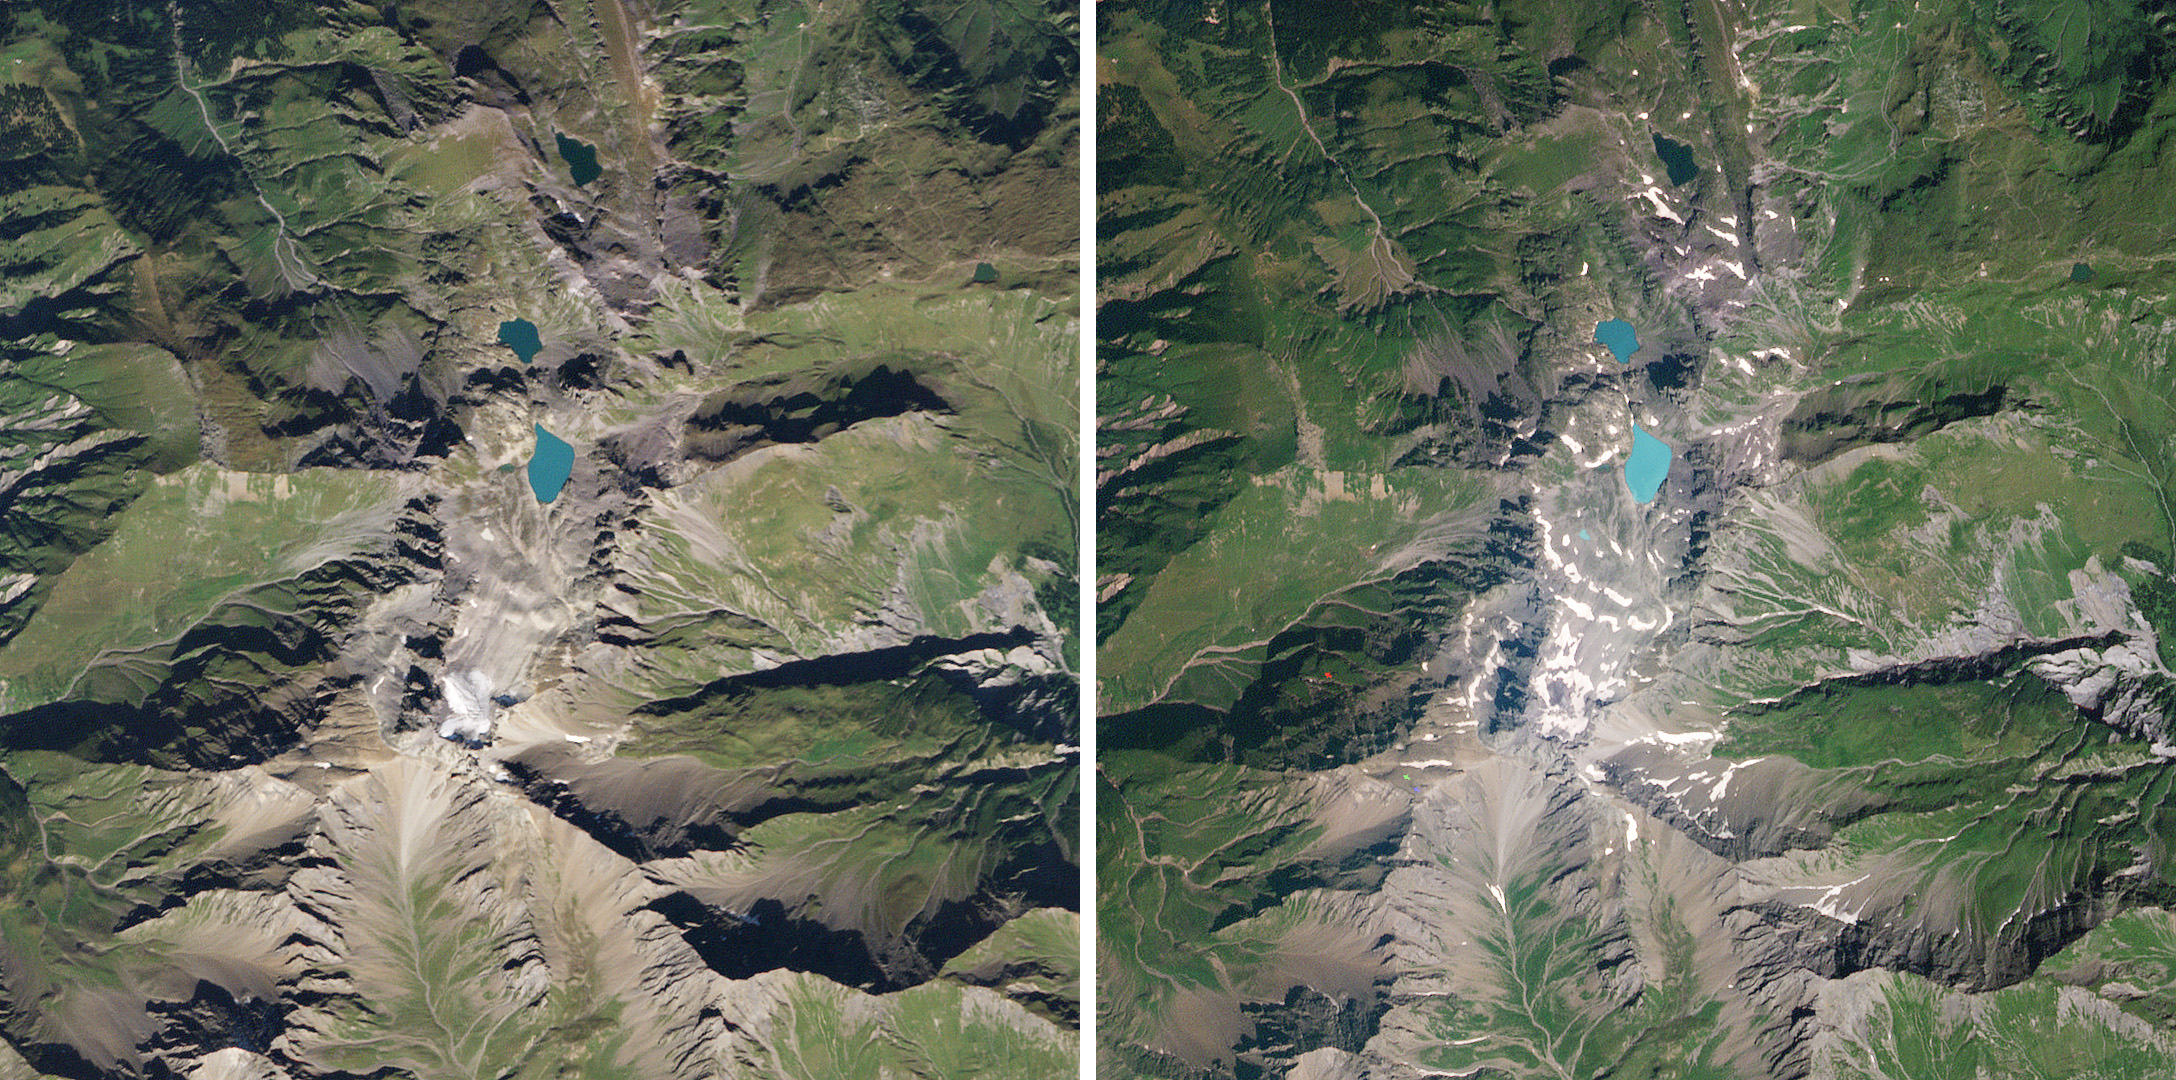 Over the course of a decade Switzerland's Pizol Galcier wasted away, transforming from an active glacier into scattered snow fields. The imagery was captured on September 8, 2009 (left) and August 9, 2019 (right). (c) 2019, Planet Labs Inc. All Rights Reserved.